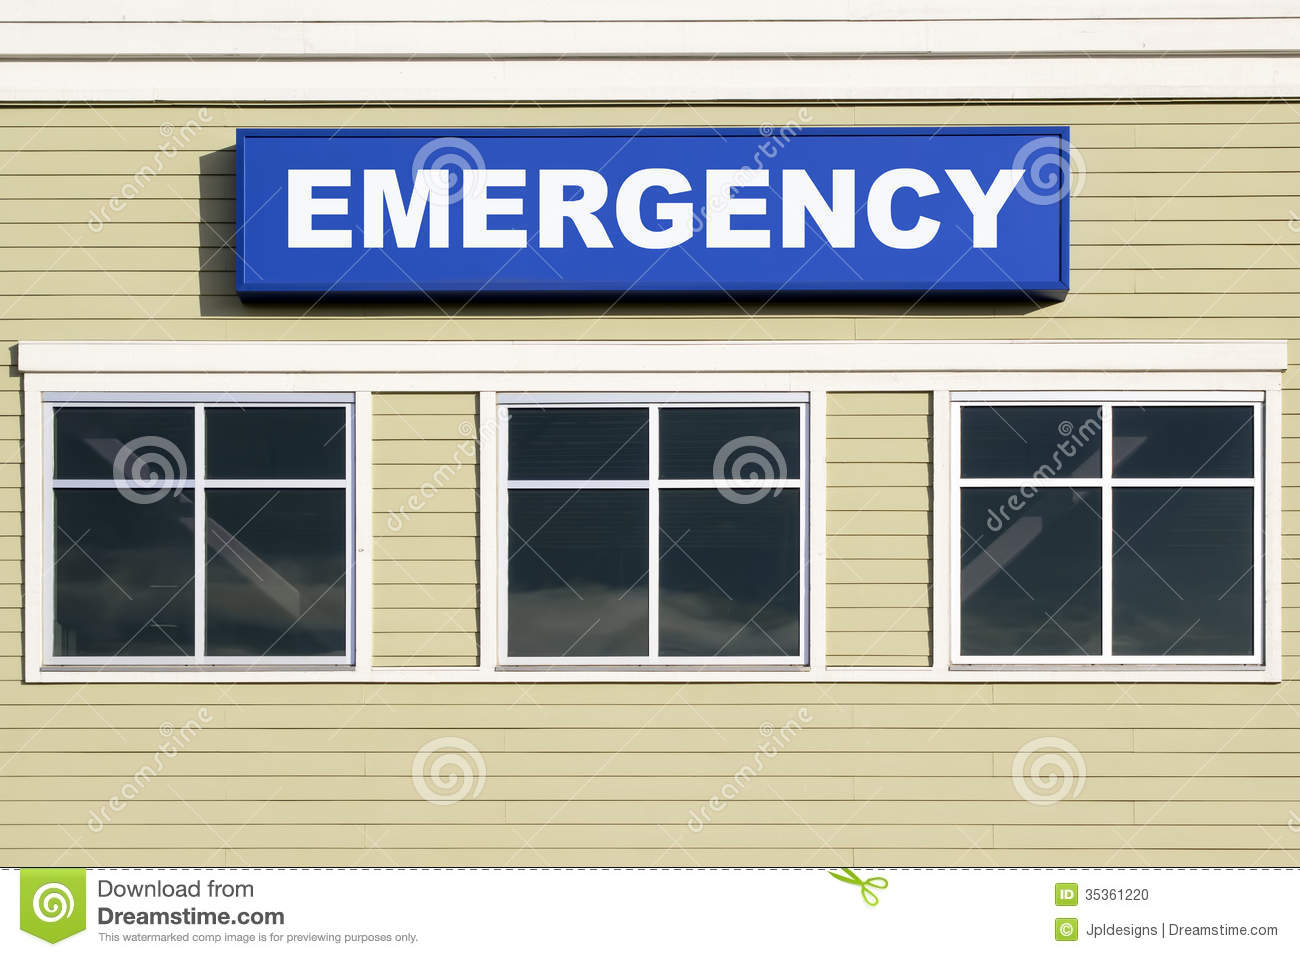 Window clipart hospital Hospital Windows Clipart emergency (31+)